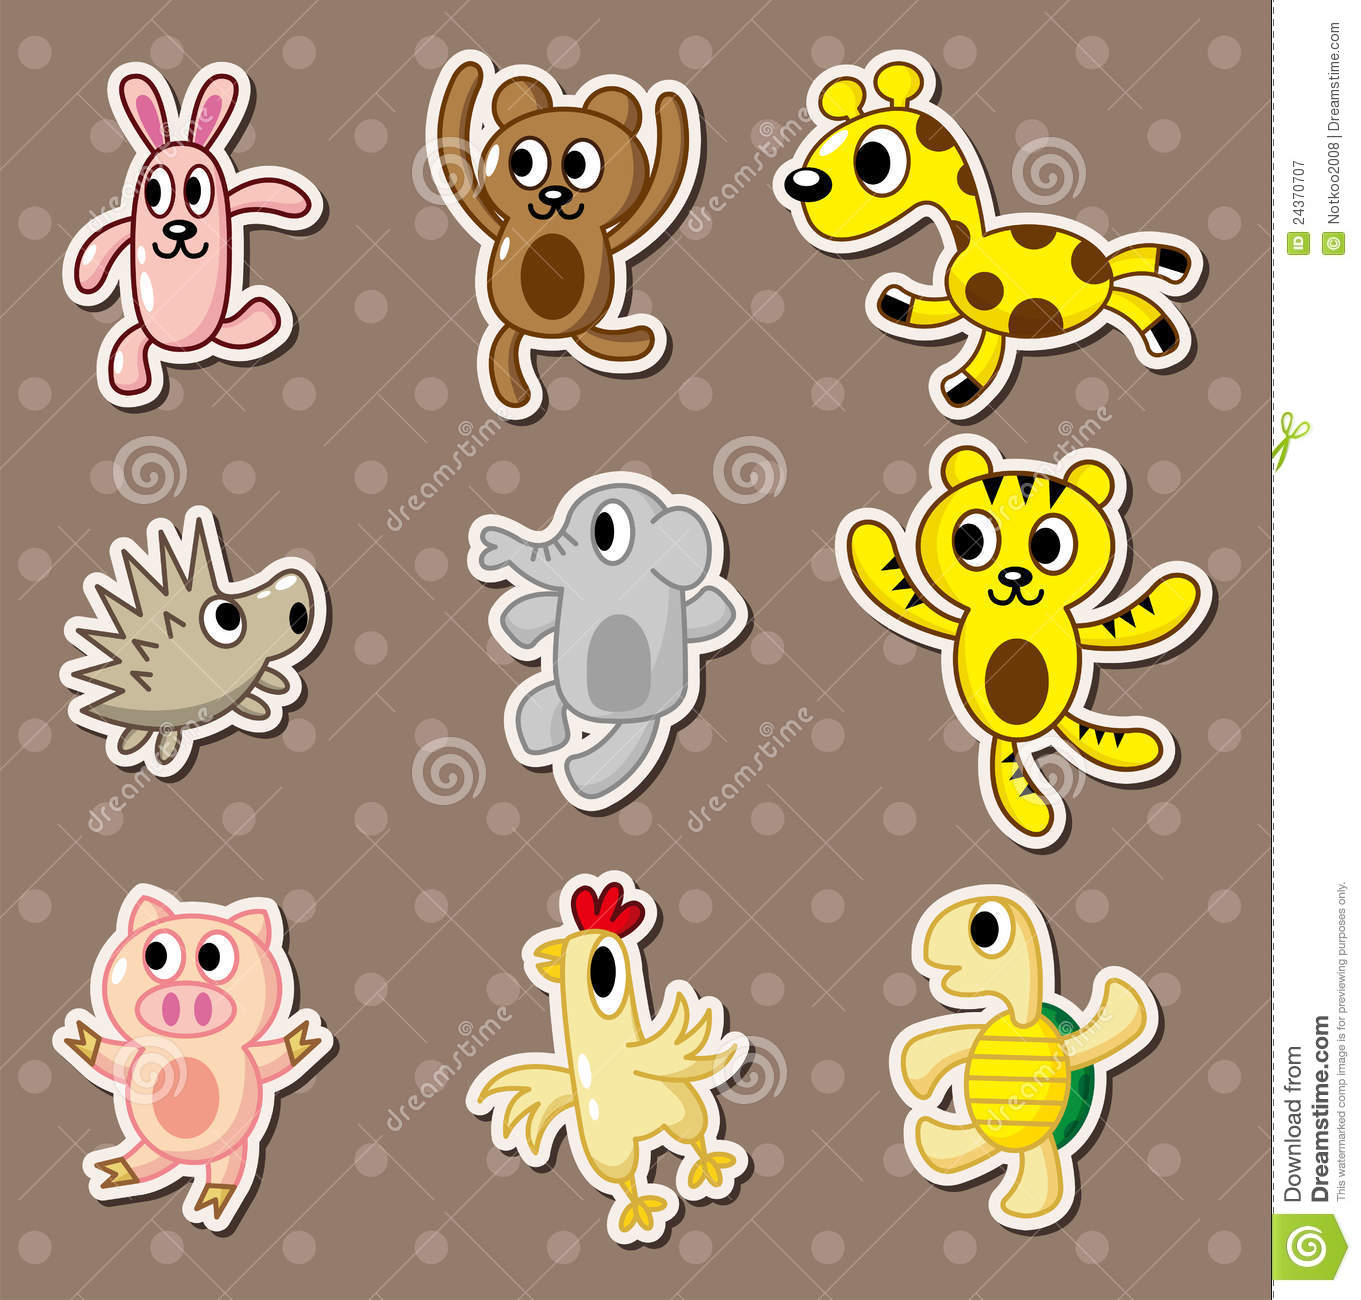 cartoon animal stickers in - photo #2